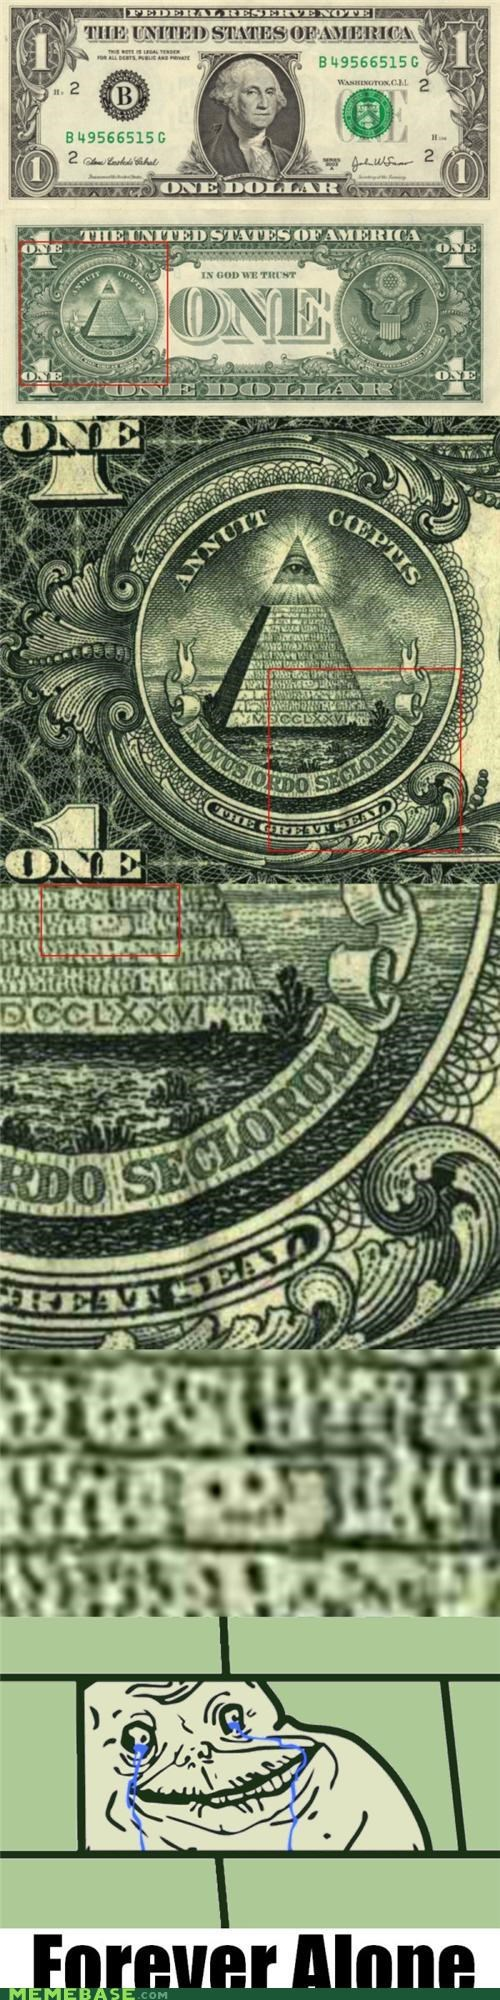 Forever Alone on a Dollar Bill